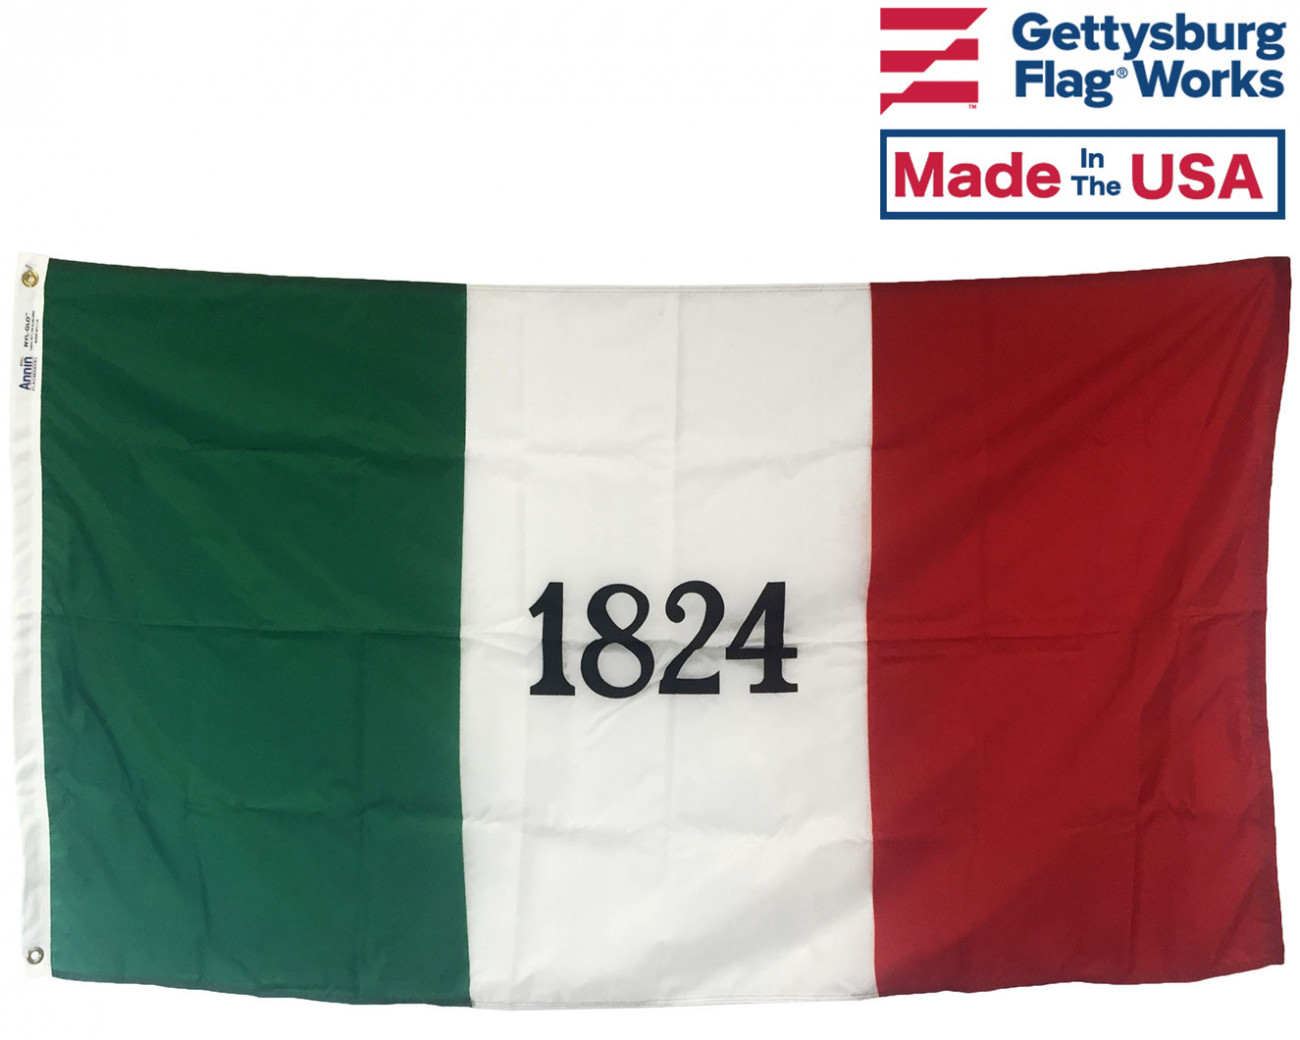 ee24a3ba73c8 Alamo 1824 Flag - 3x5  - Central America Flags - Country Flags ...